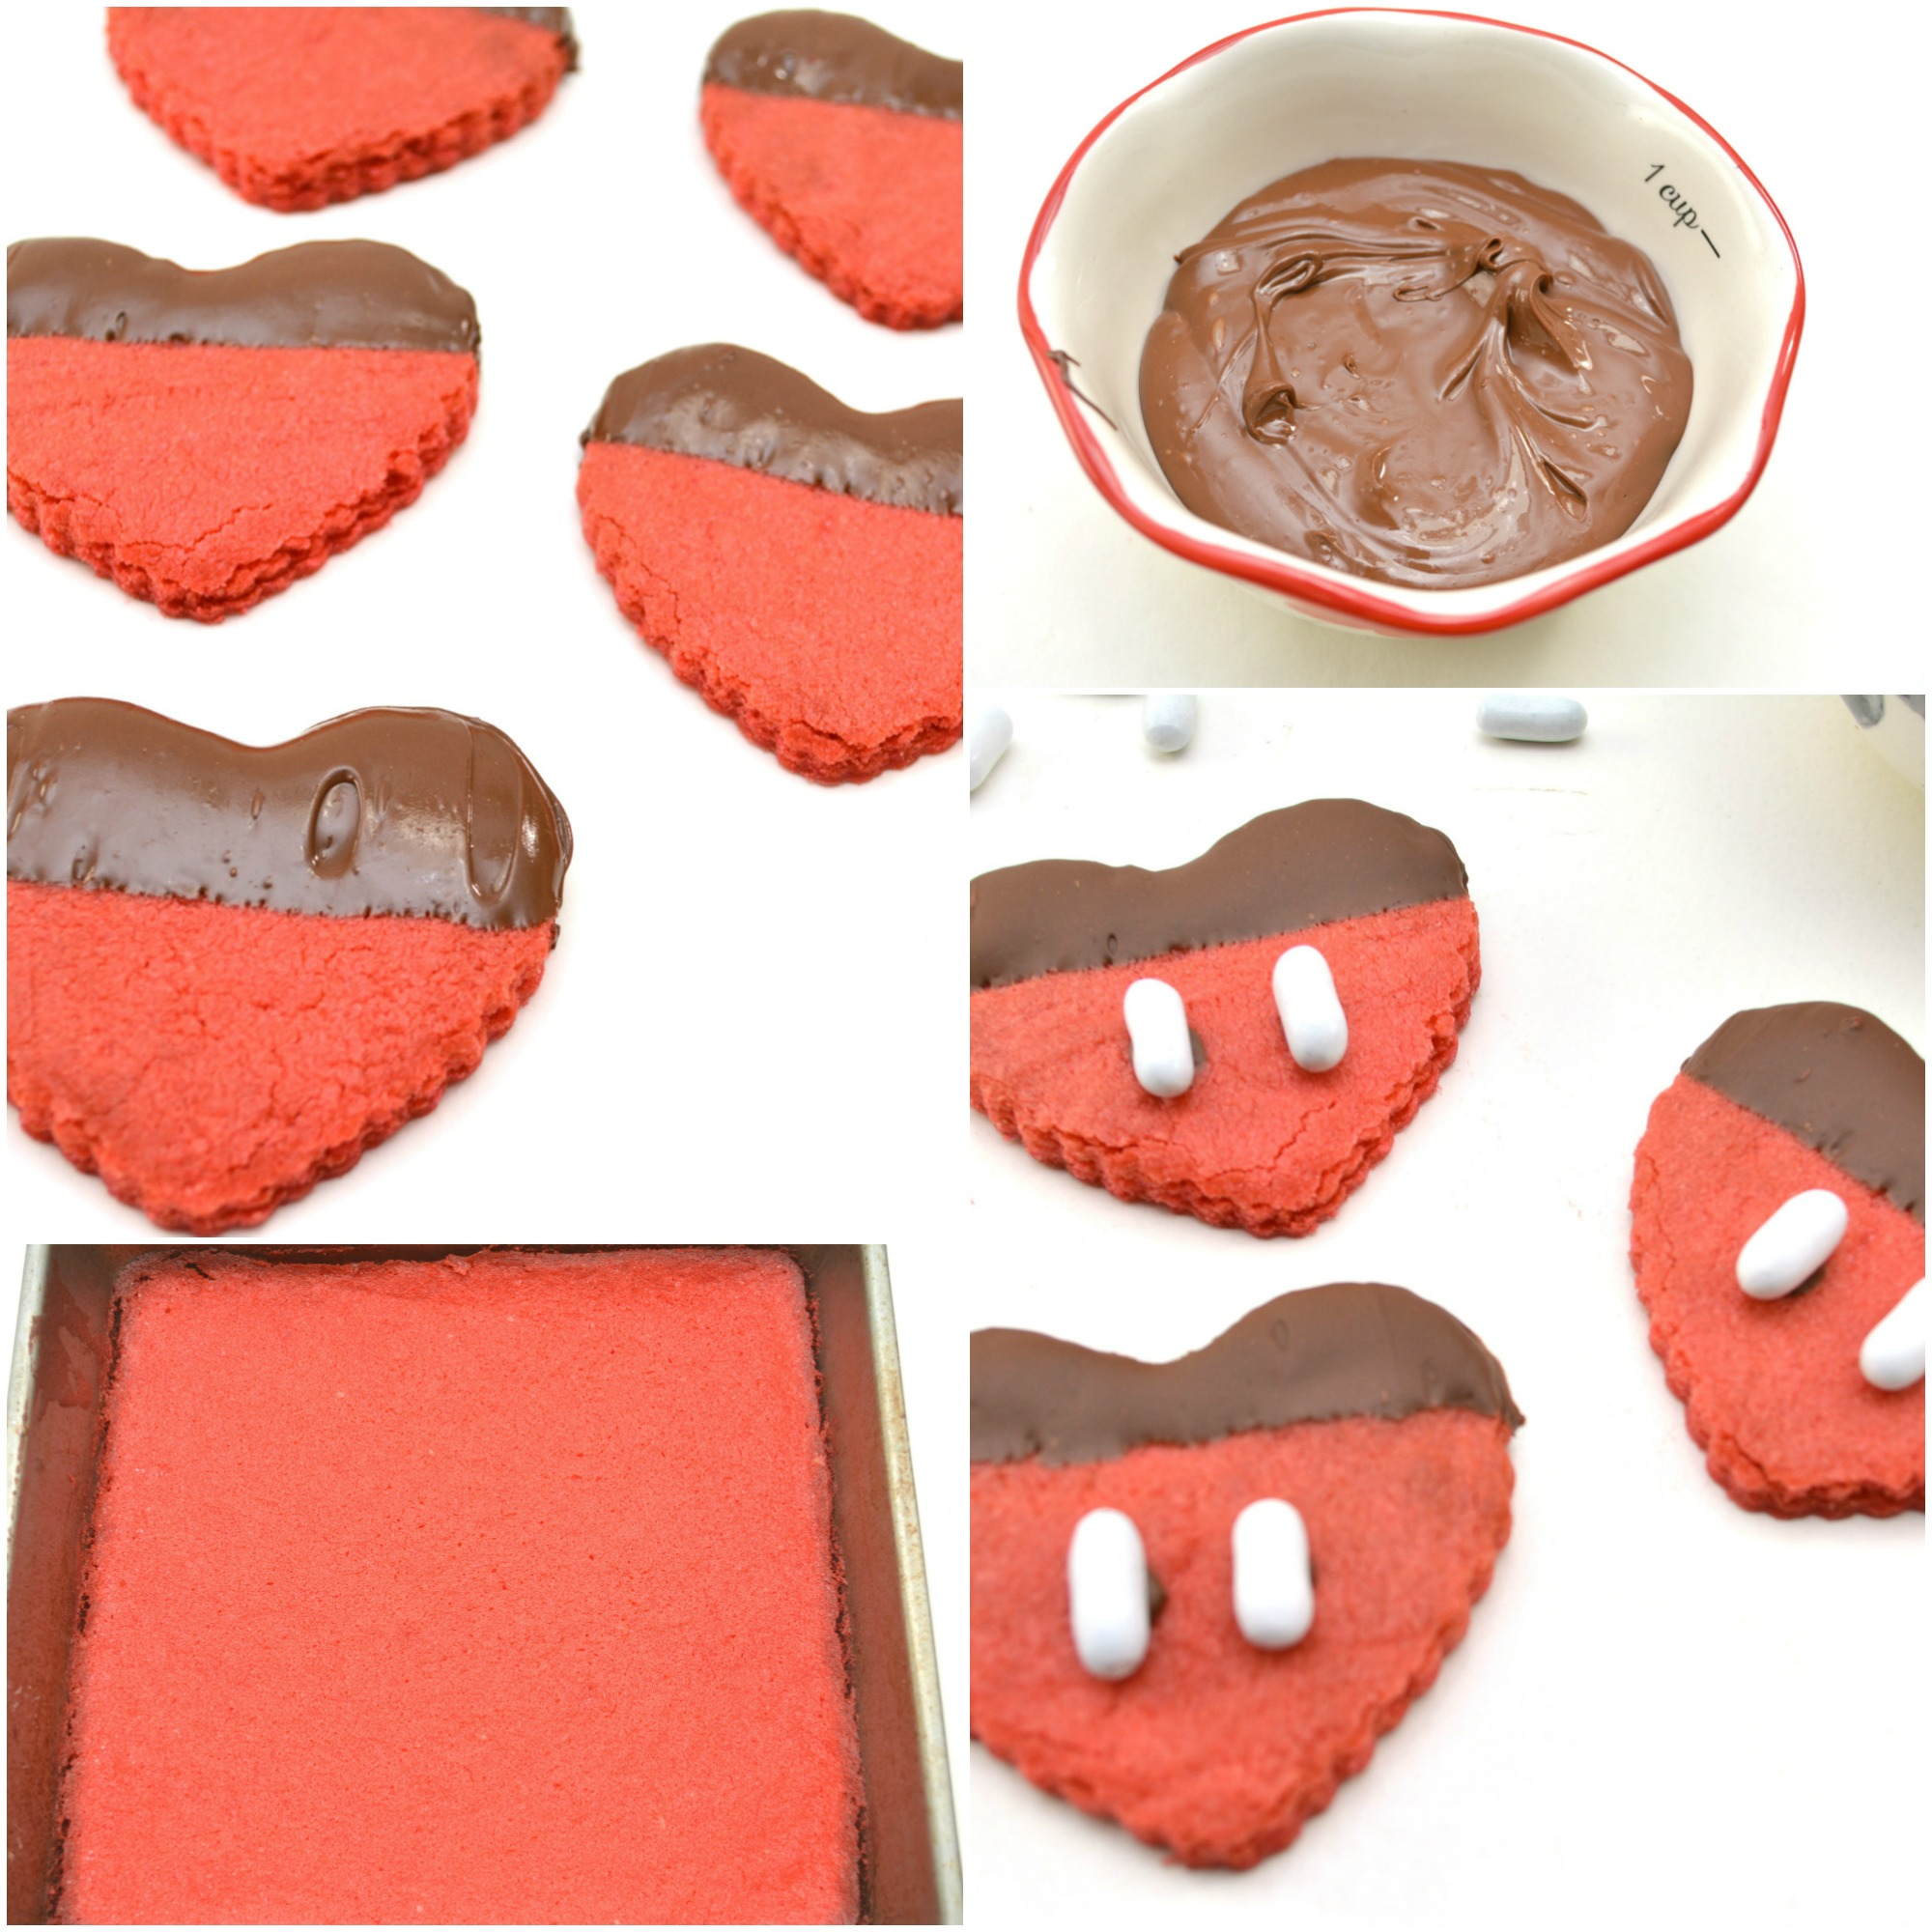 Disney-Trip-Reveal-Idea-Cookies-Recipe-Valentine-honeymoon-heart-Mickey-1